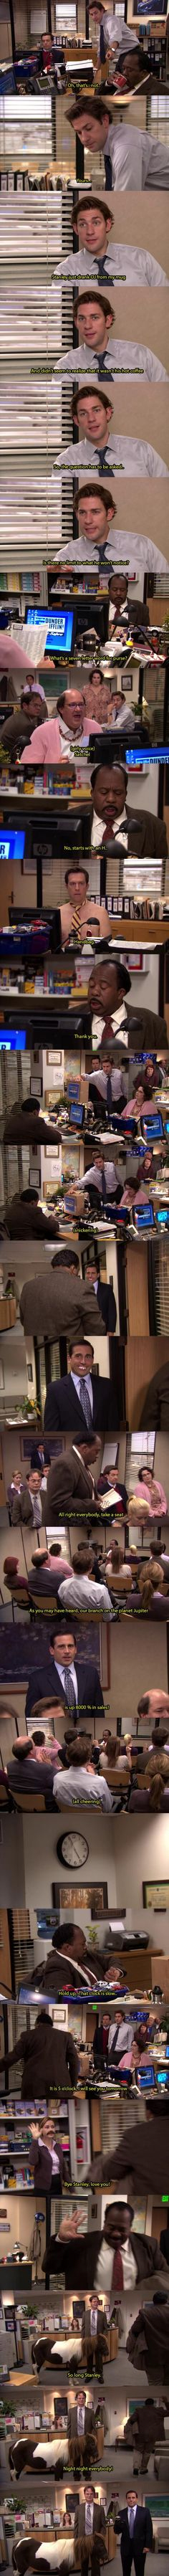 The Office: What does Stanley notice? Love this episode! -D